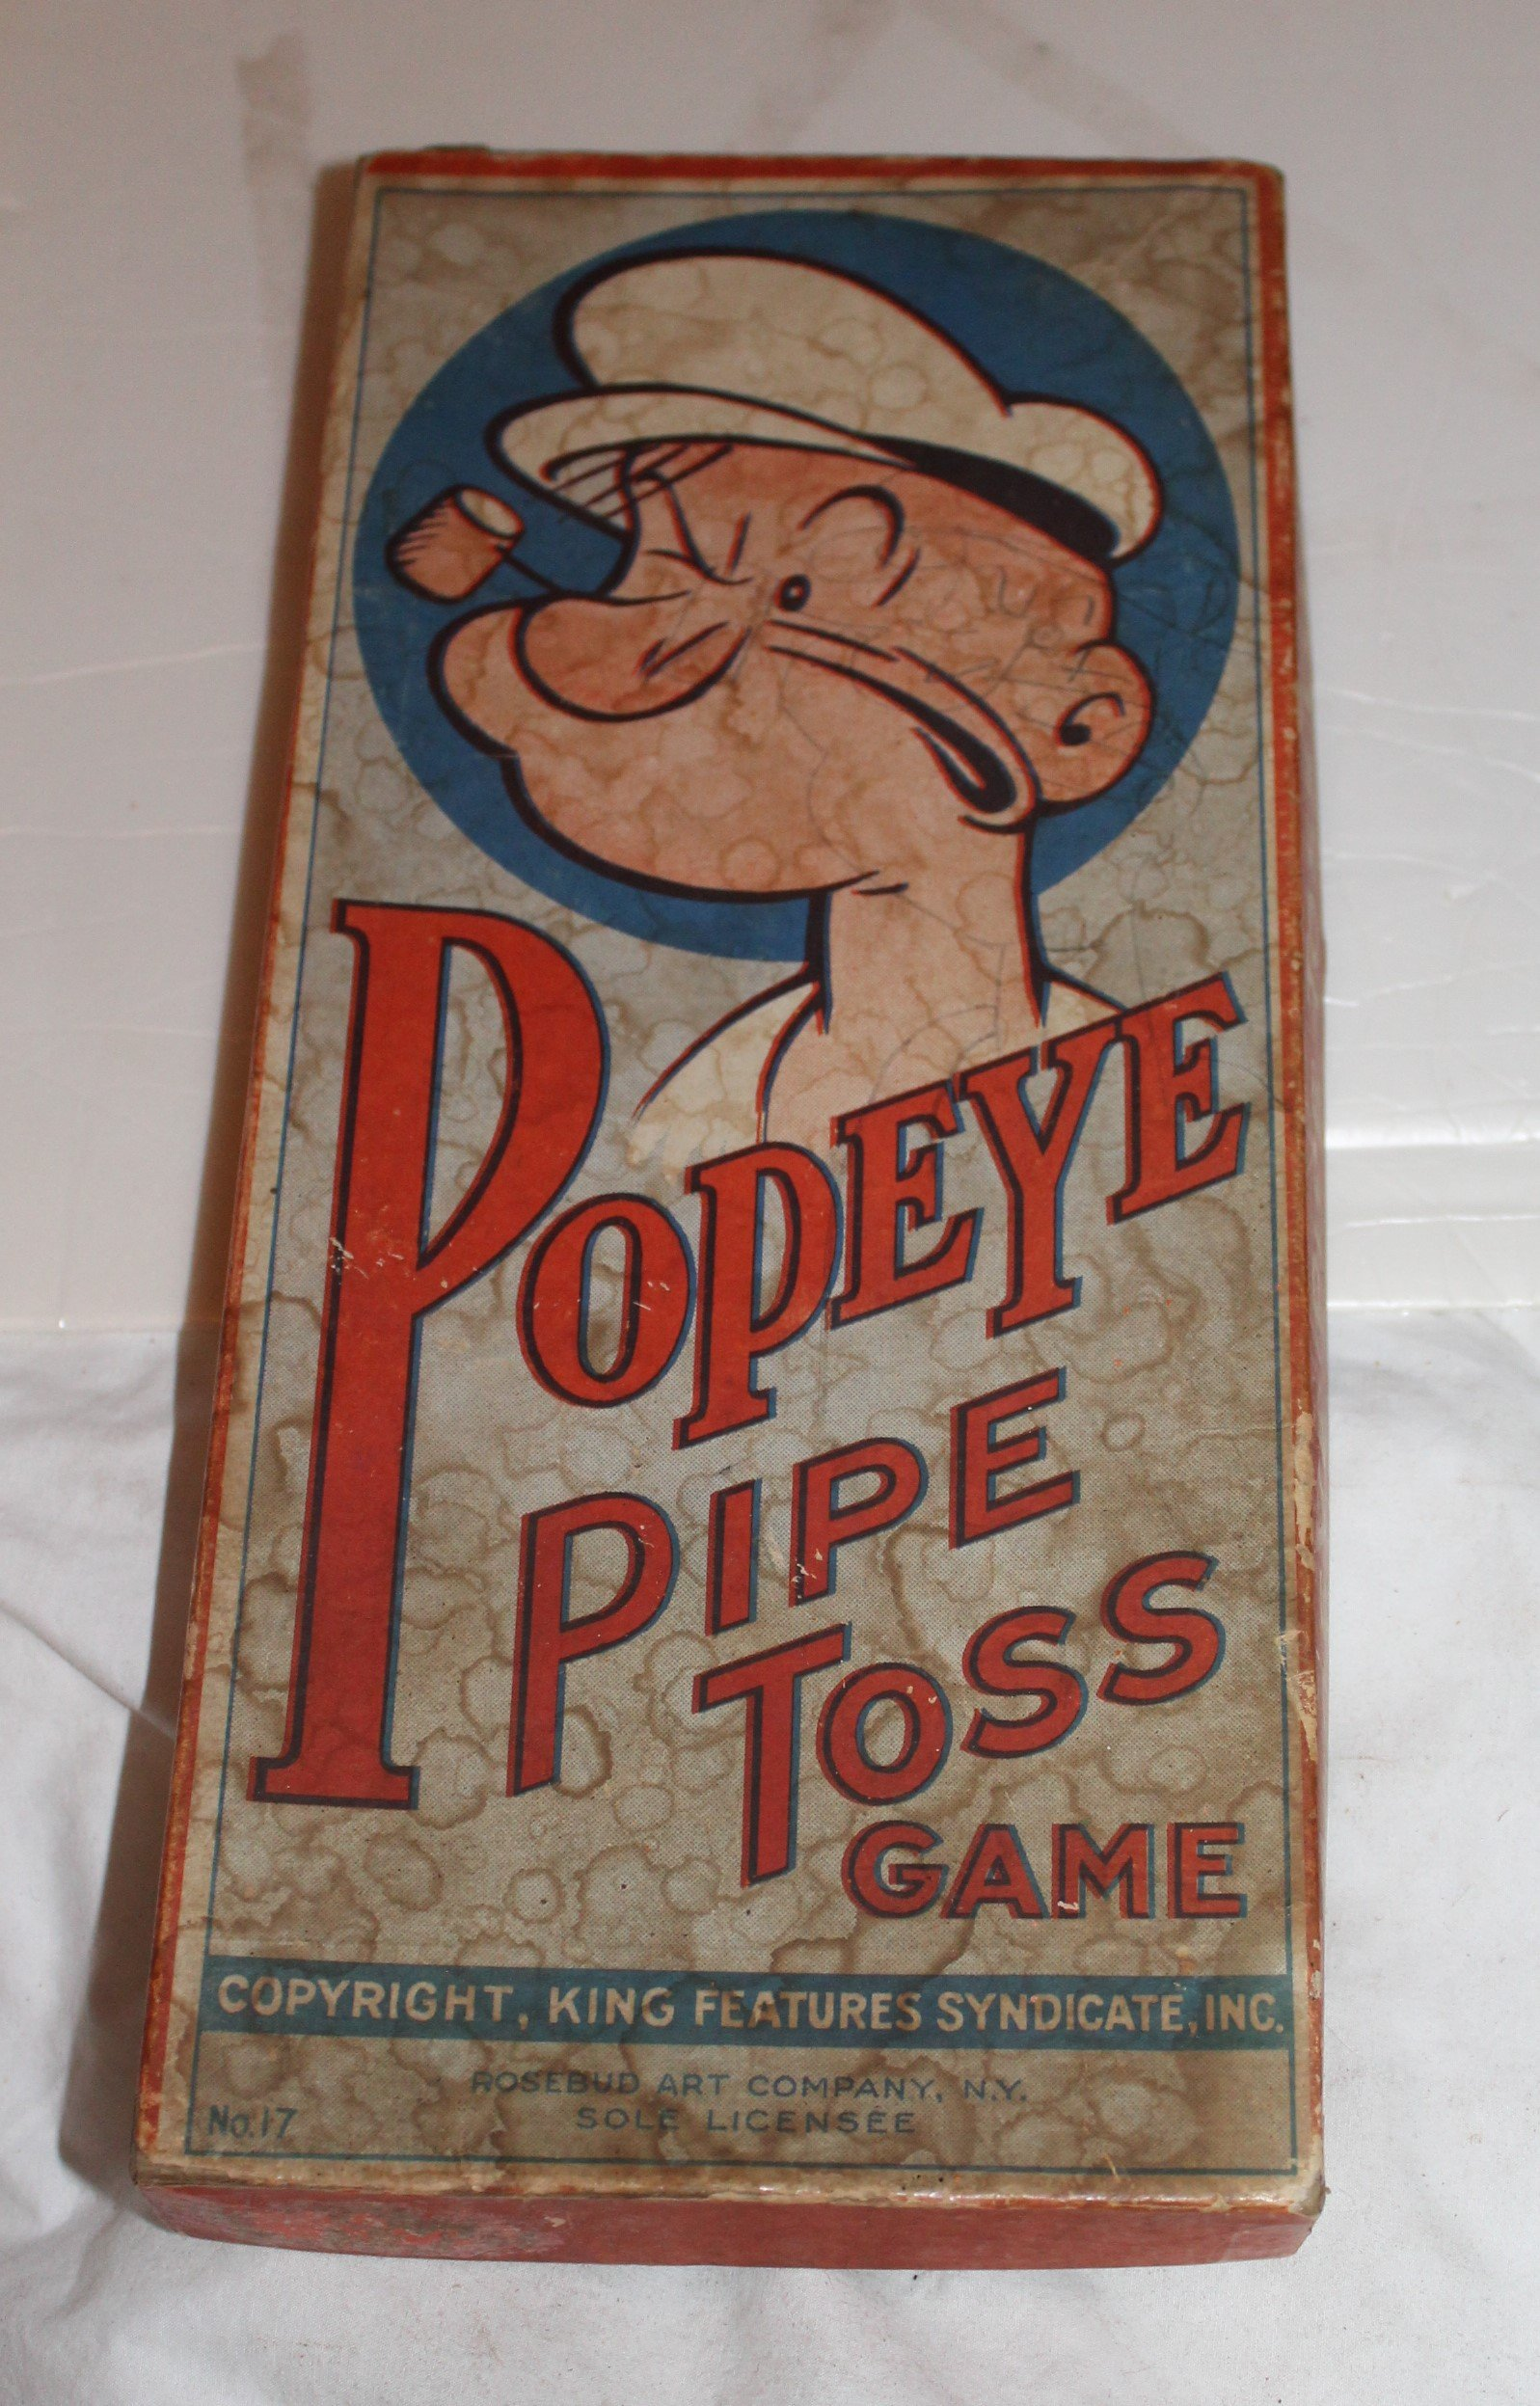 https://0201.nccdn.net/4_2/000/000/076/de9/popeye-pipe-toss-game.JPG